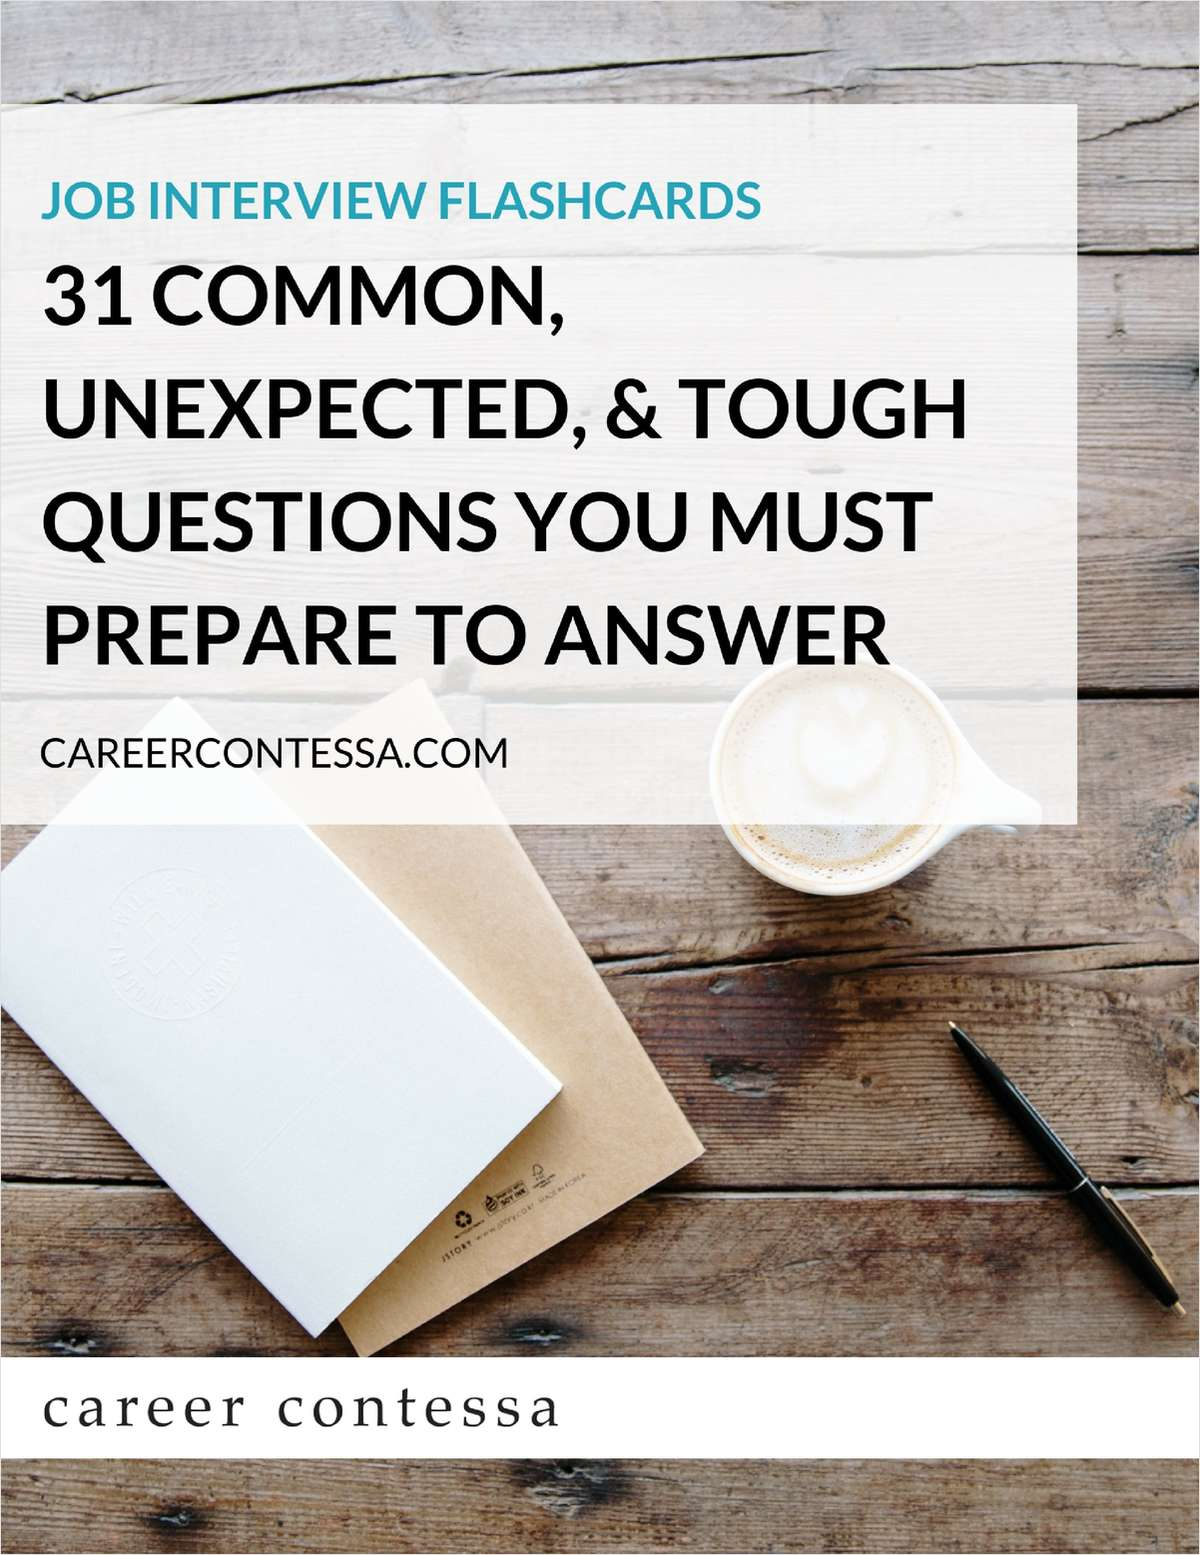 Job Interview Flashcards - 31 Common, Unexpected, & Tough Questions You Must Prepare to Answer